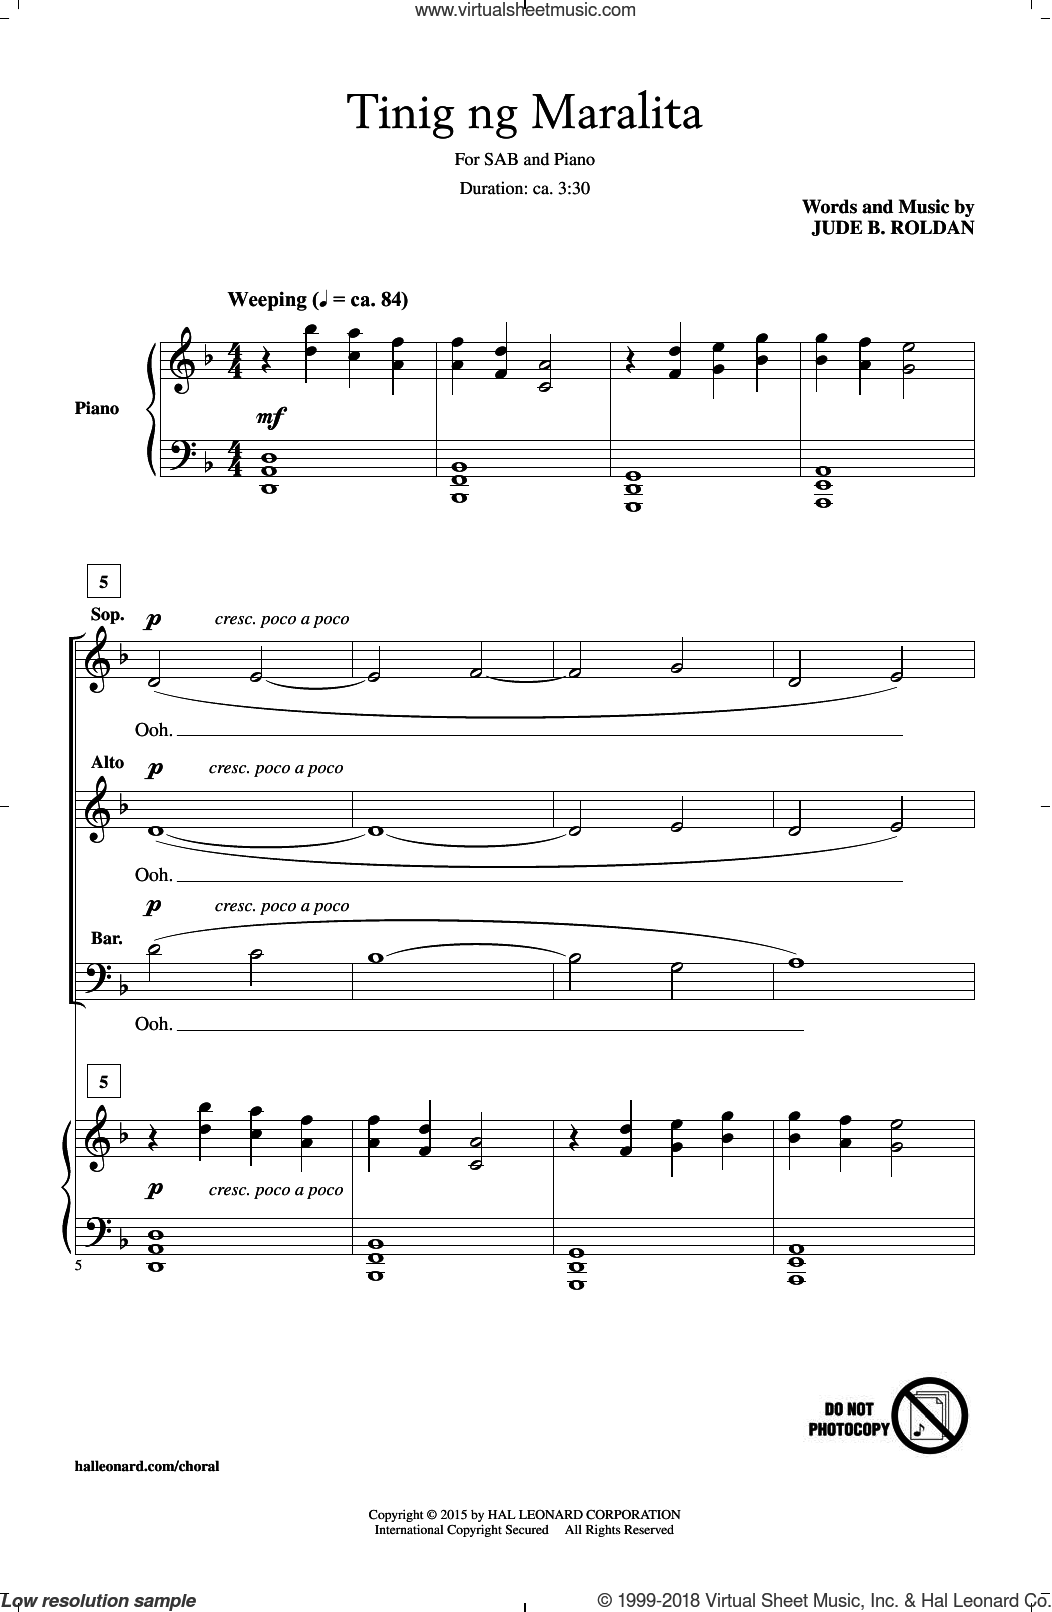 Tinig Ng Maralita sheet music for choir (SAB: soprano, alto, bass) by Jude Roldan, intermediate